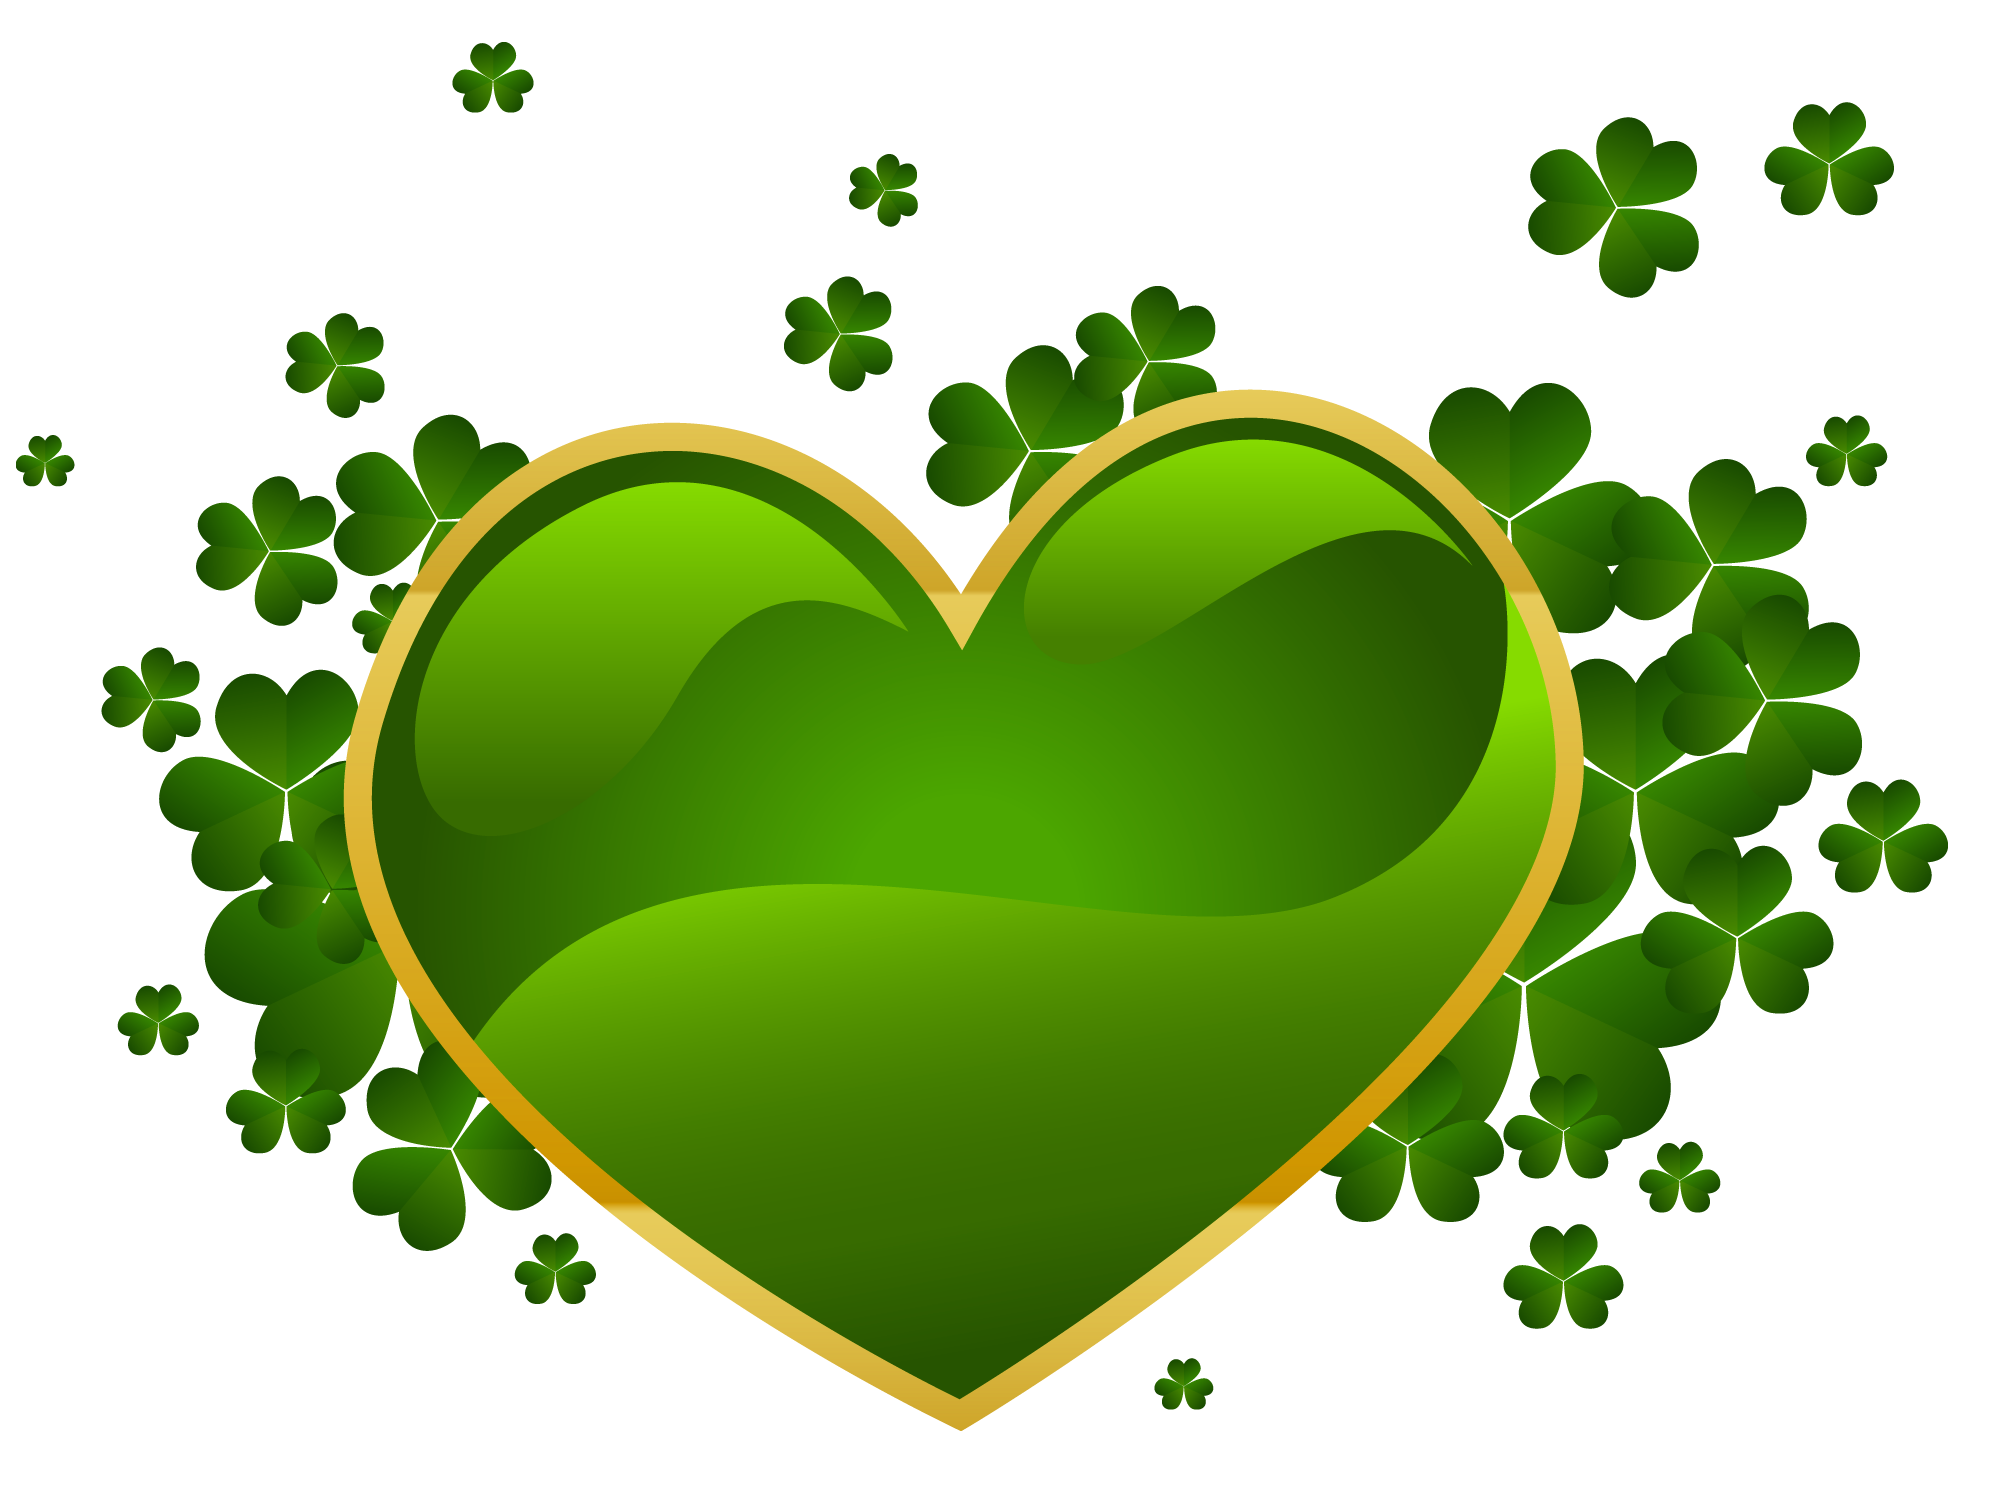 17 Best ideas about St Patricks Day Clipart on Pinterest.